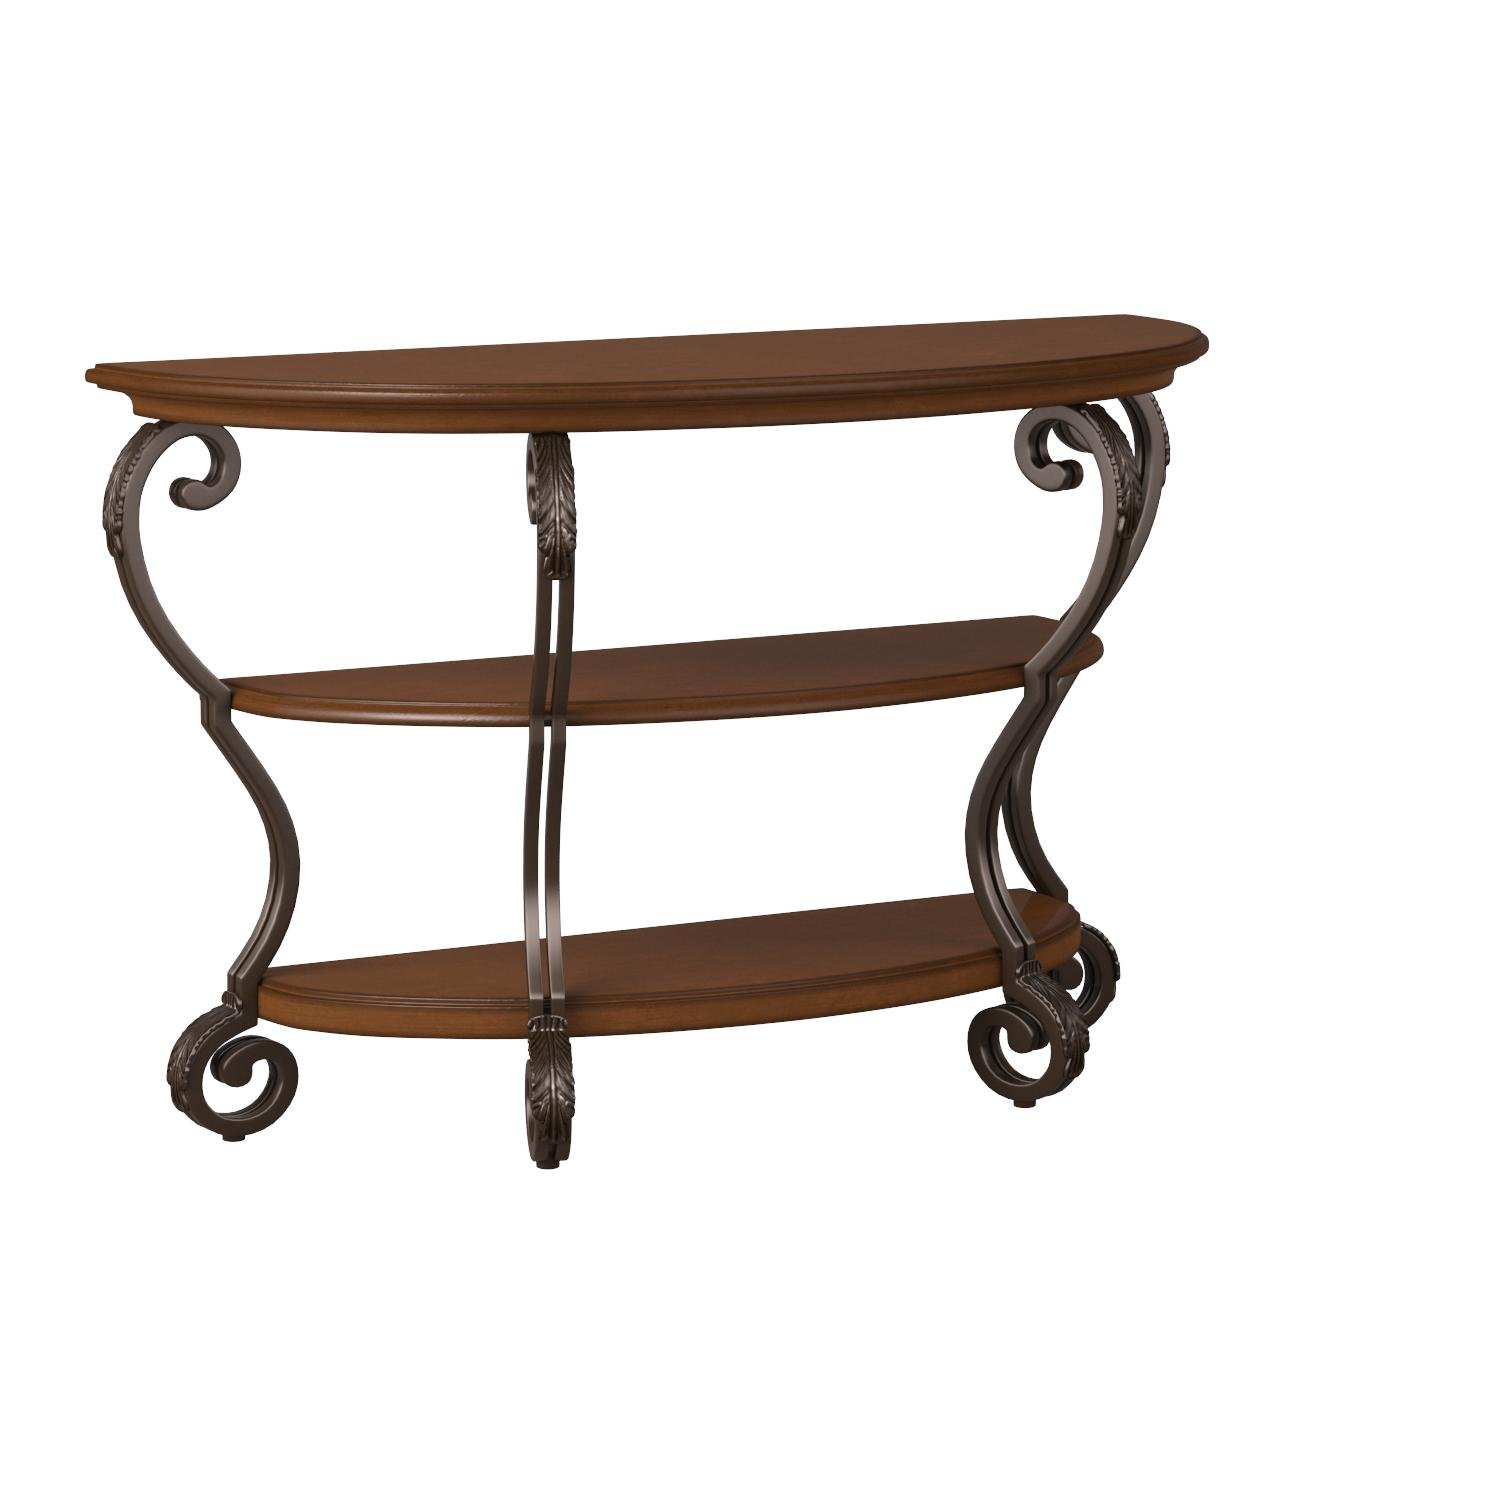 Awesome Details About Ashley Furniture Signature Design Nestor Sofa Table 2 Shelf Semi Circle Download Free Architecture Designs Terstmadebymaigaardcom